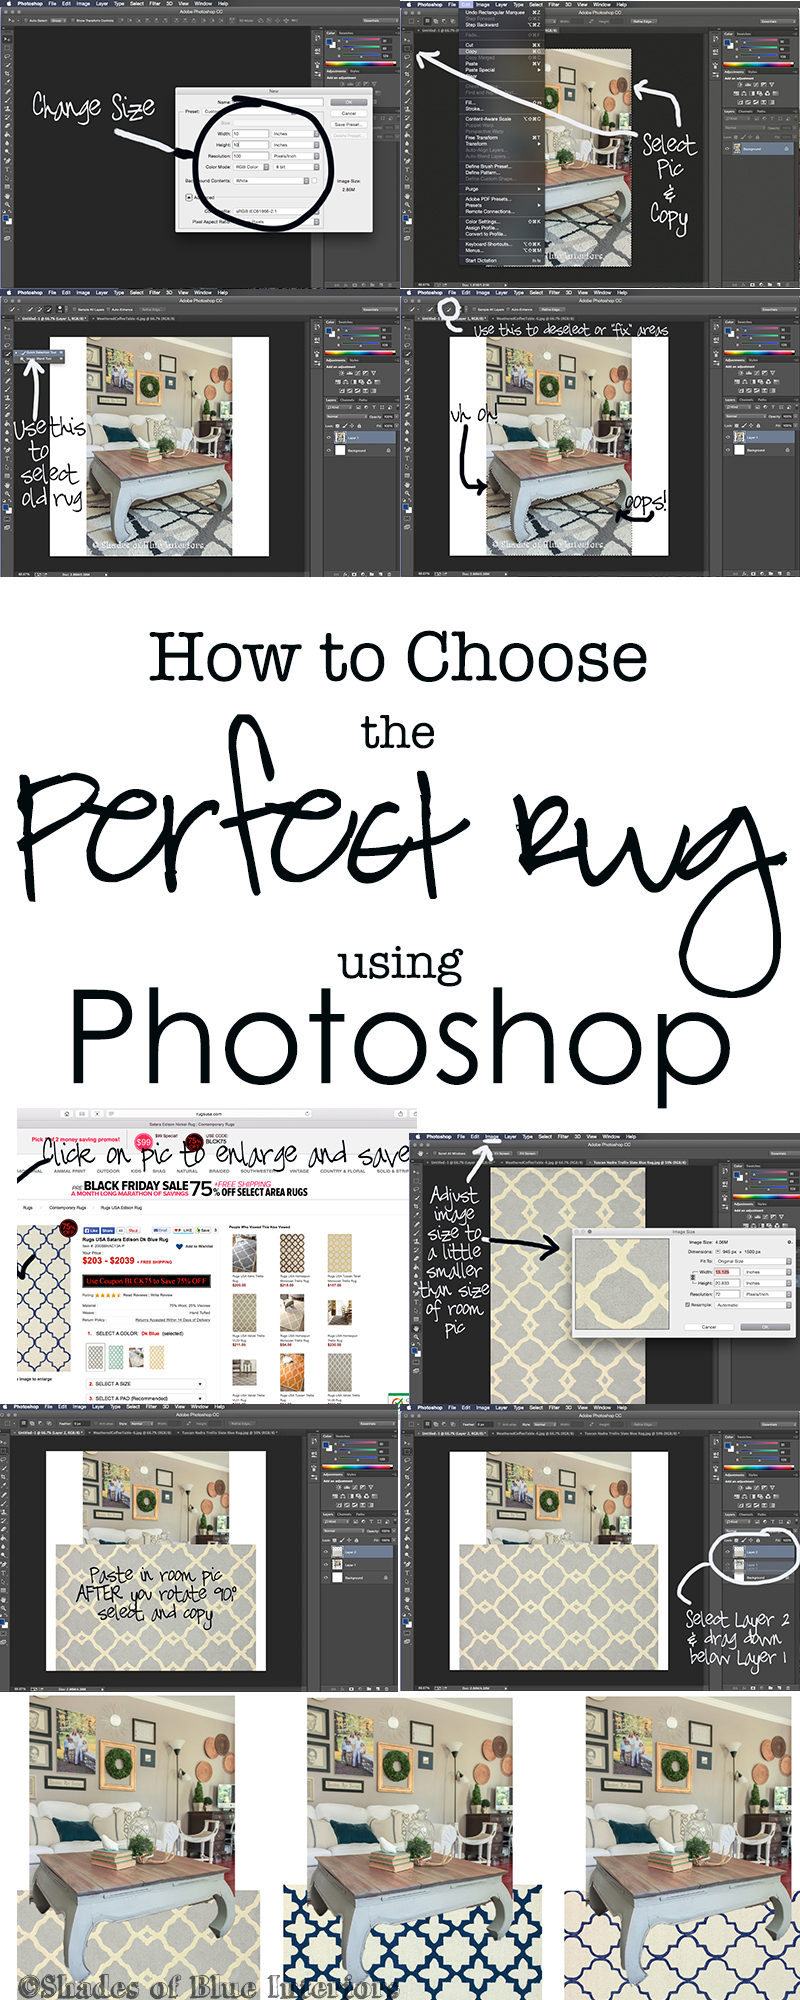 How to Choose the Perfect Rug Using Photoshop